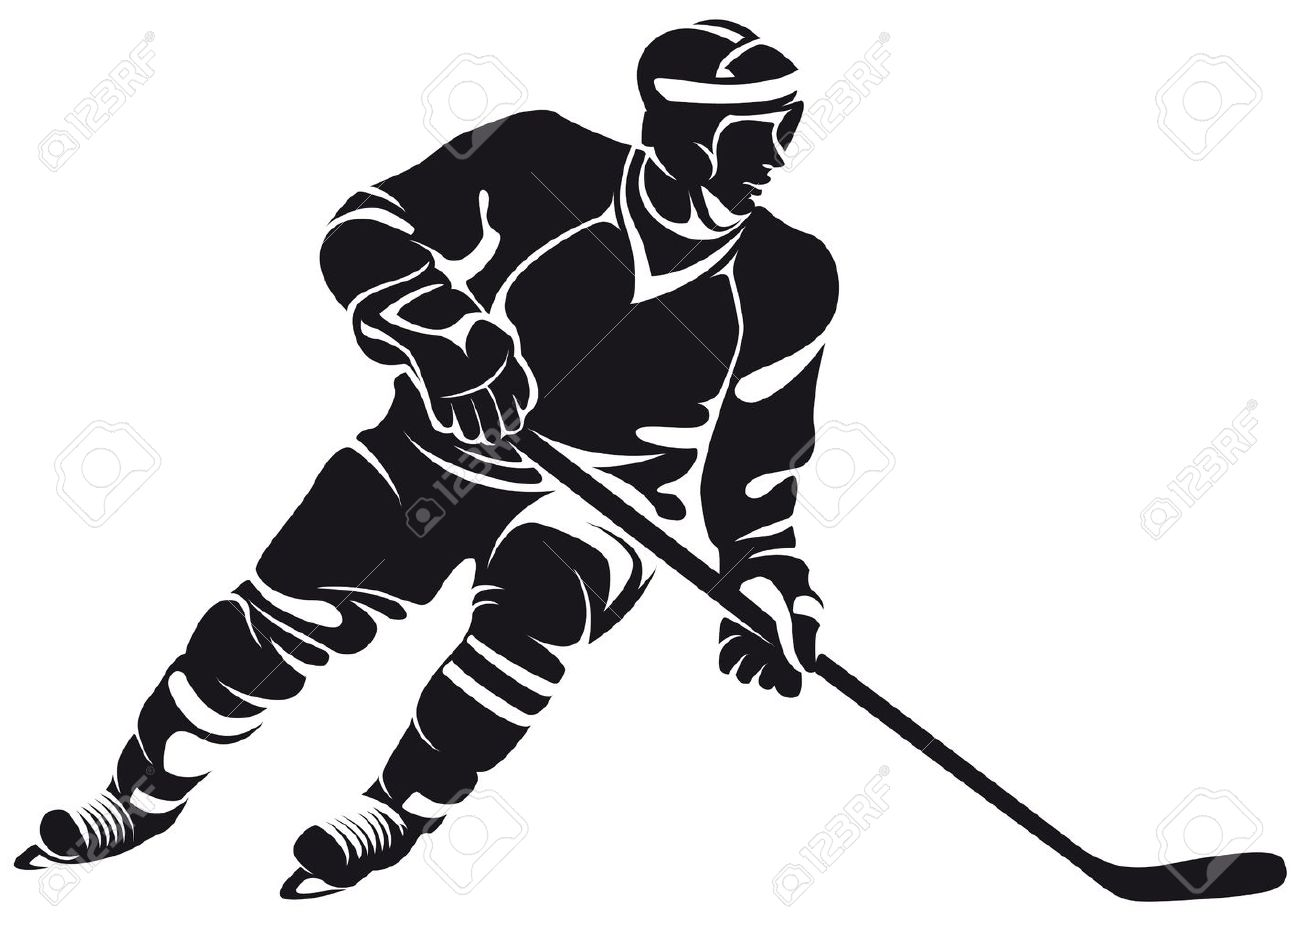 hockey player silhouette isolated on white royalty free cliparts rh 123rf com hockey player clip art free hockey player clipart black and white